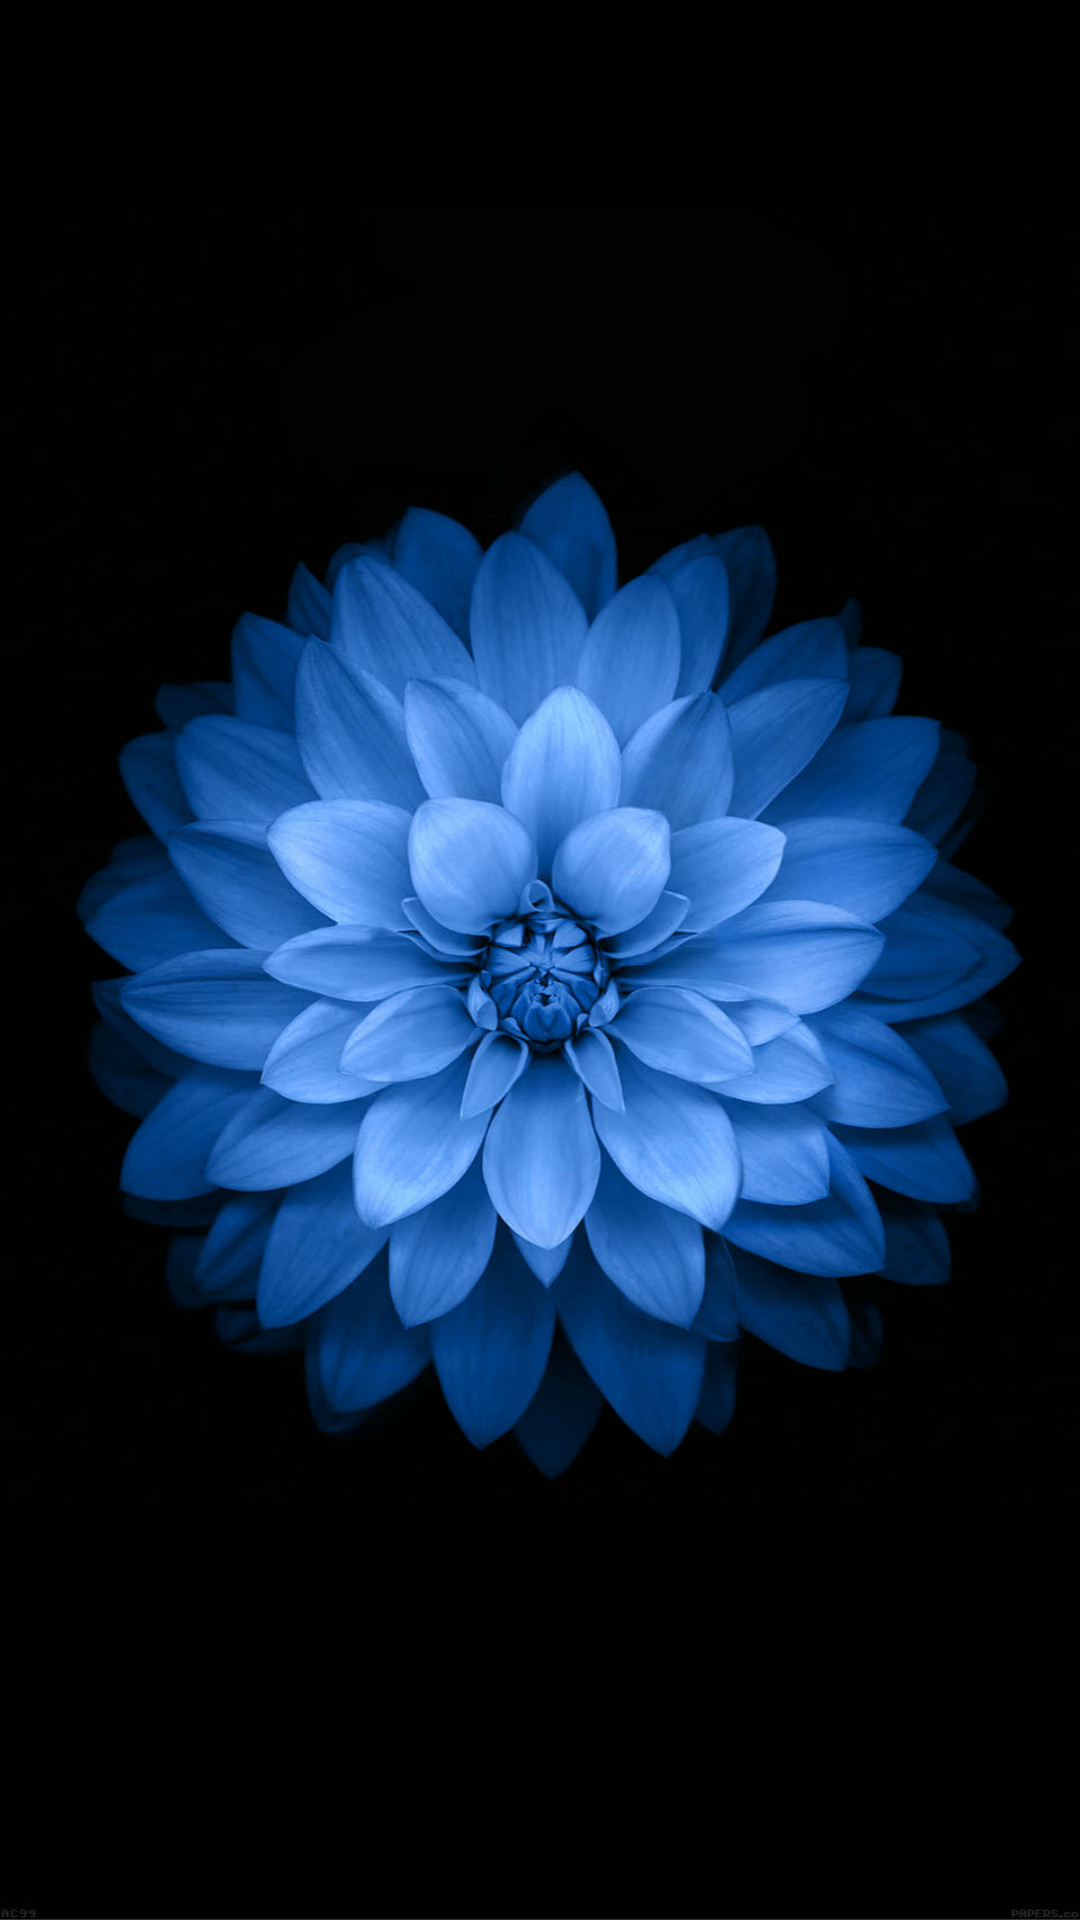 Variant Blue Lotues iOS 8 Background Art #iPhone #6 #wallpaper